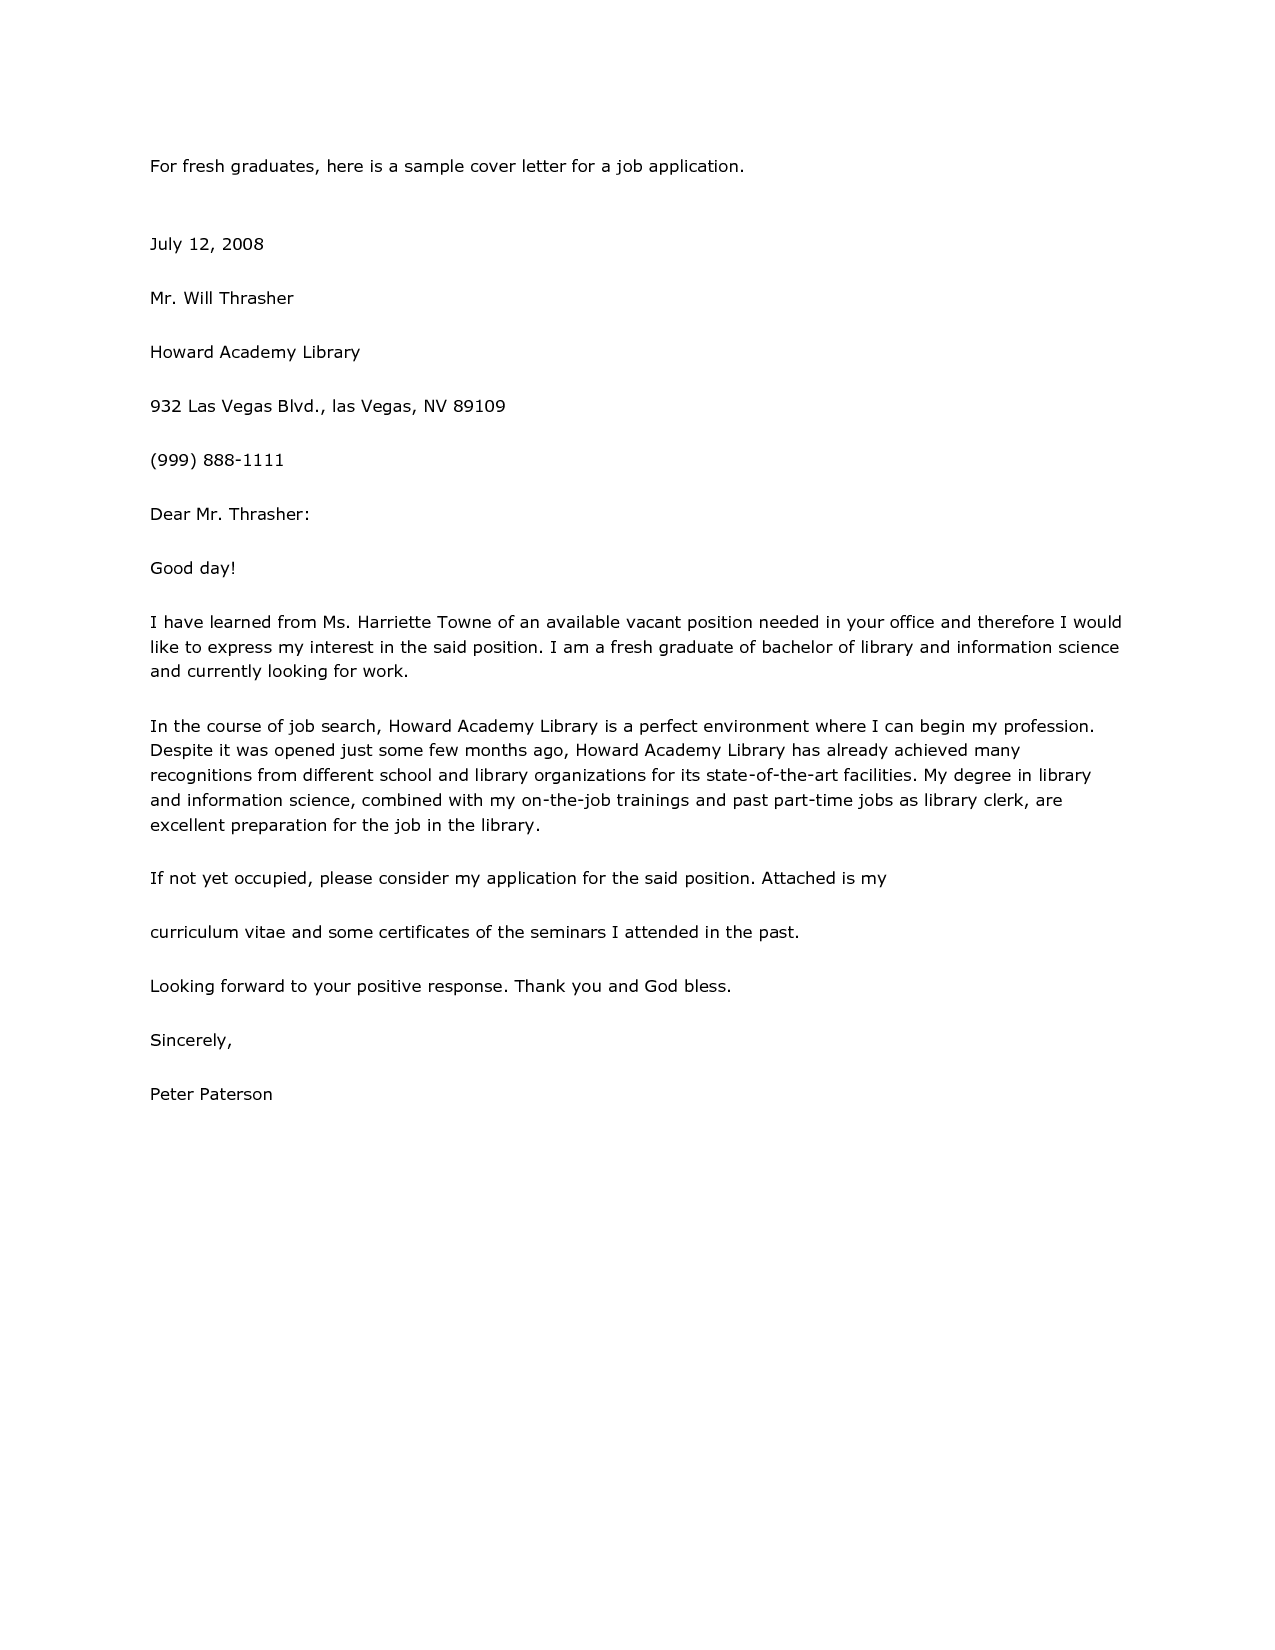 Example Resume Letter Cover For Job Best Business Sample